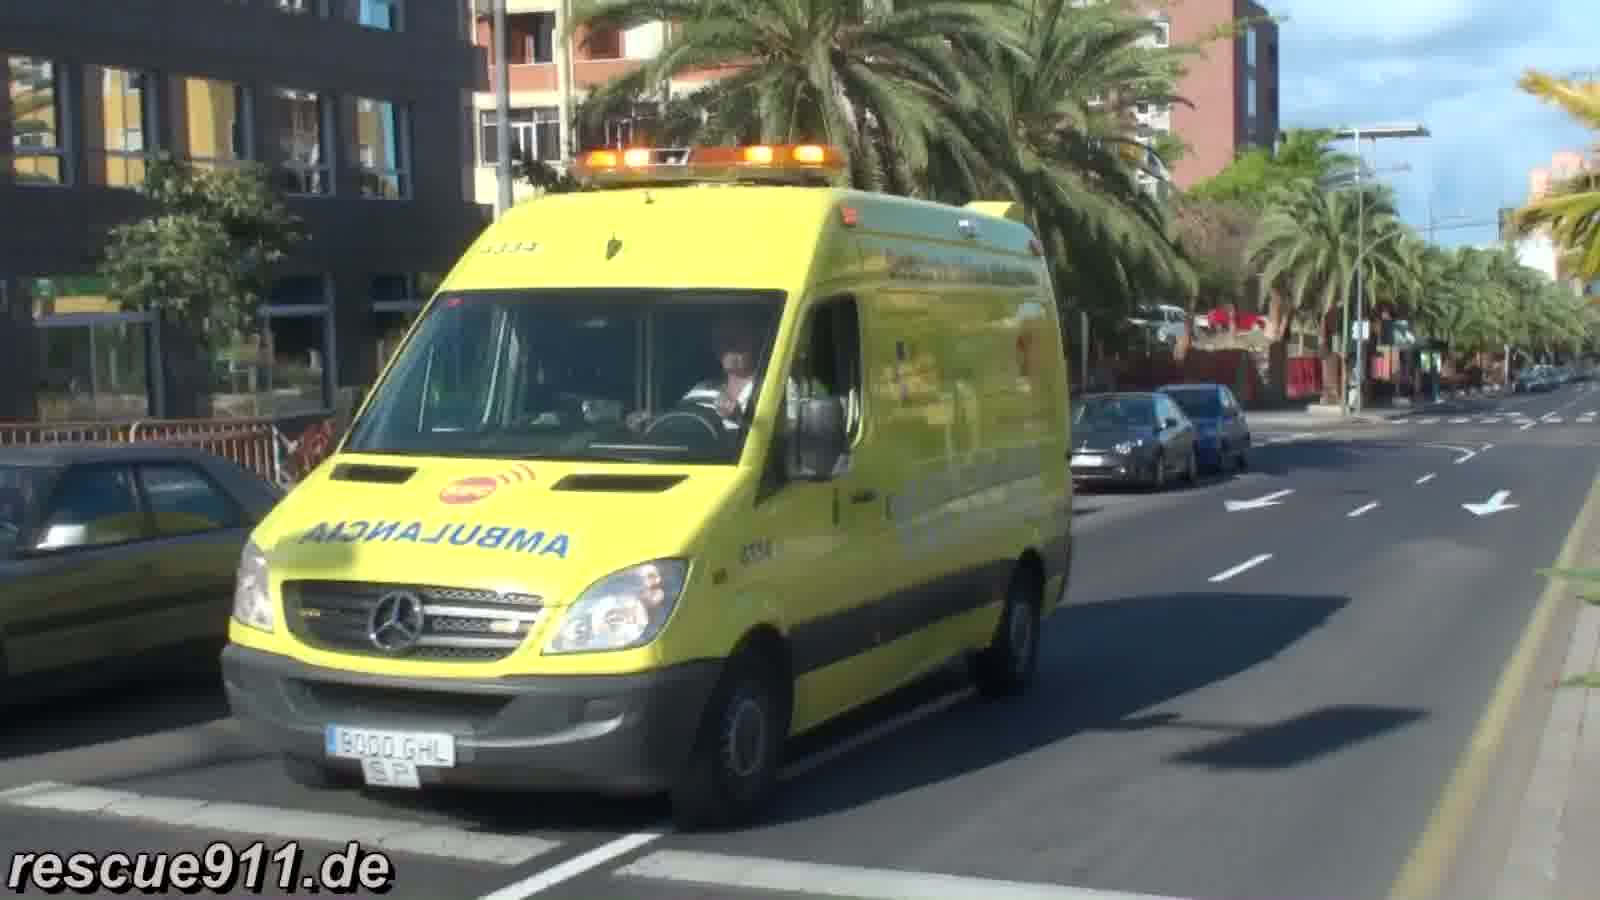 Ambulancia Servicio de Urgencias Canario (collection) (stream)